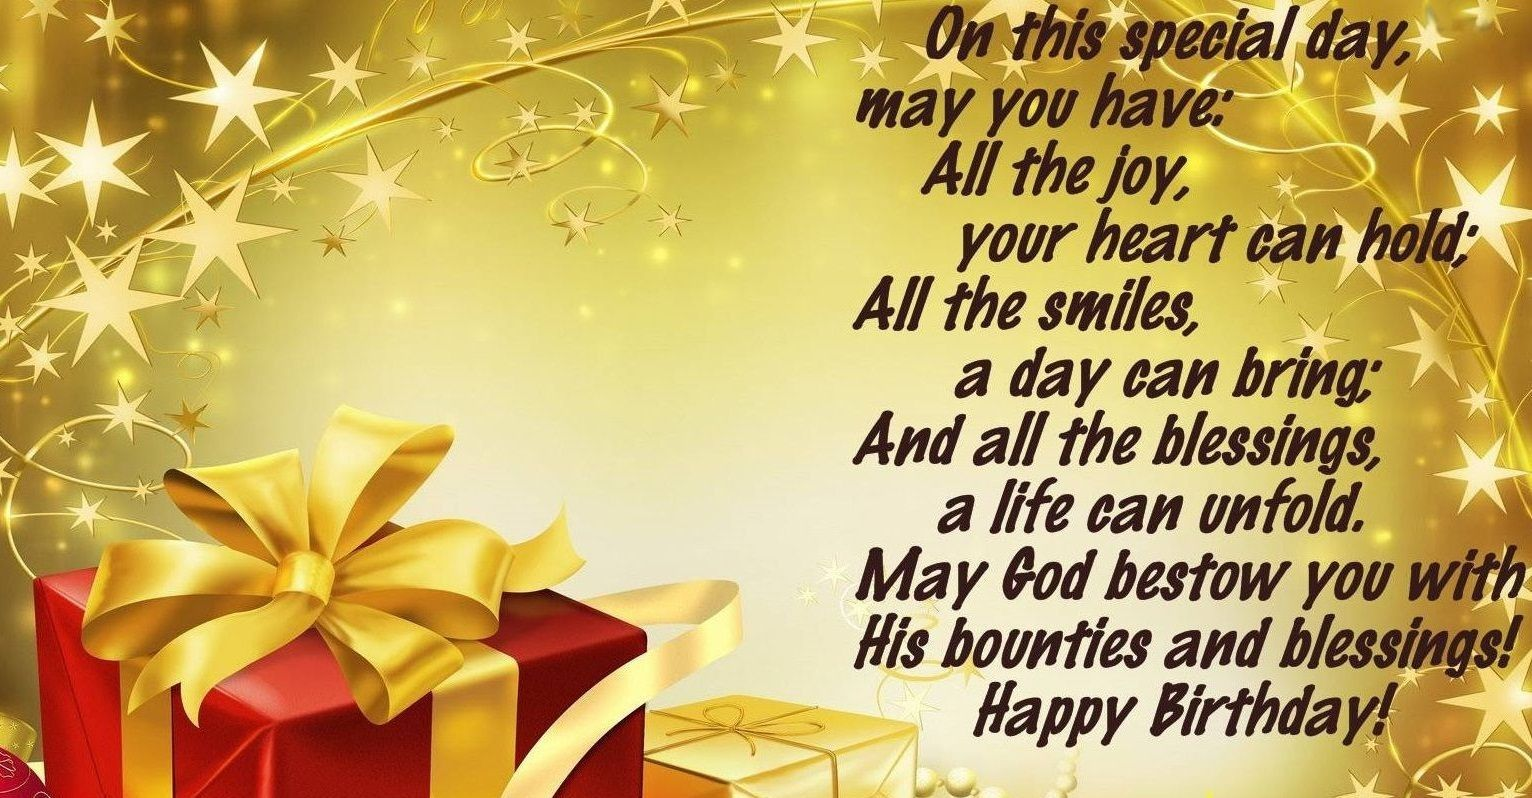 Birthday Quotes For Elder Brother In Law Brother Birthday Quotes Birthday Message For Brother Birthday Quotes